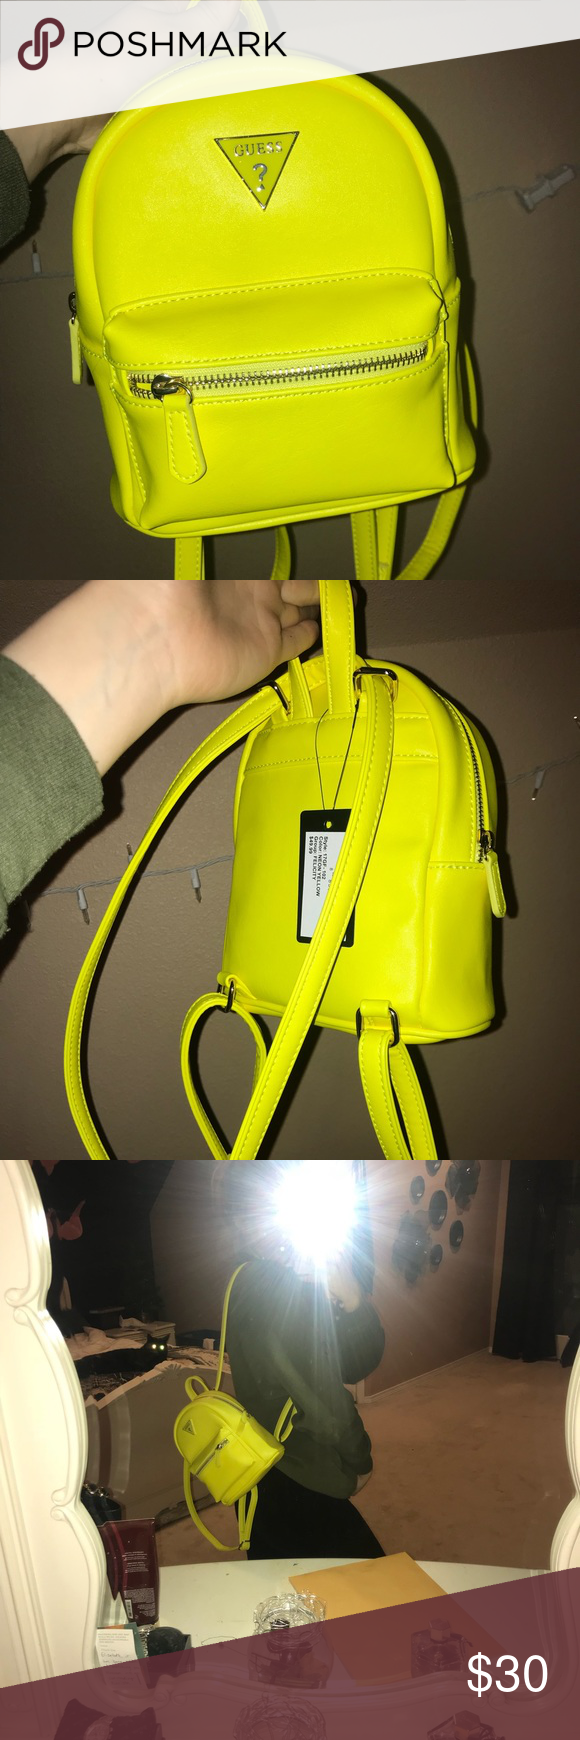 c54d0267ea0 BRAND NEW Guess vibrant yellow mini backpack! This is such a gorgeous  piece. A